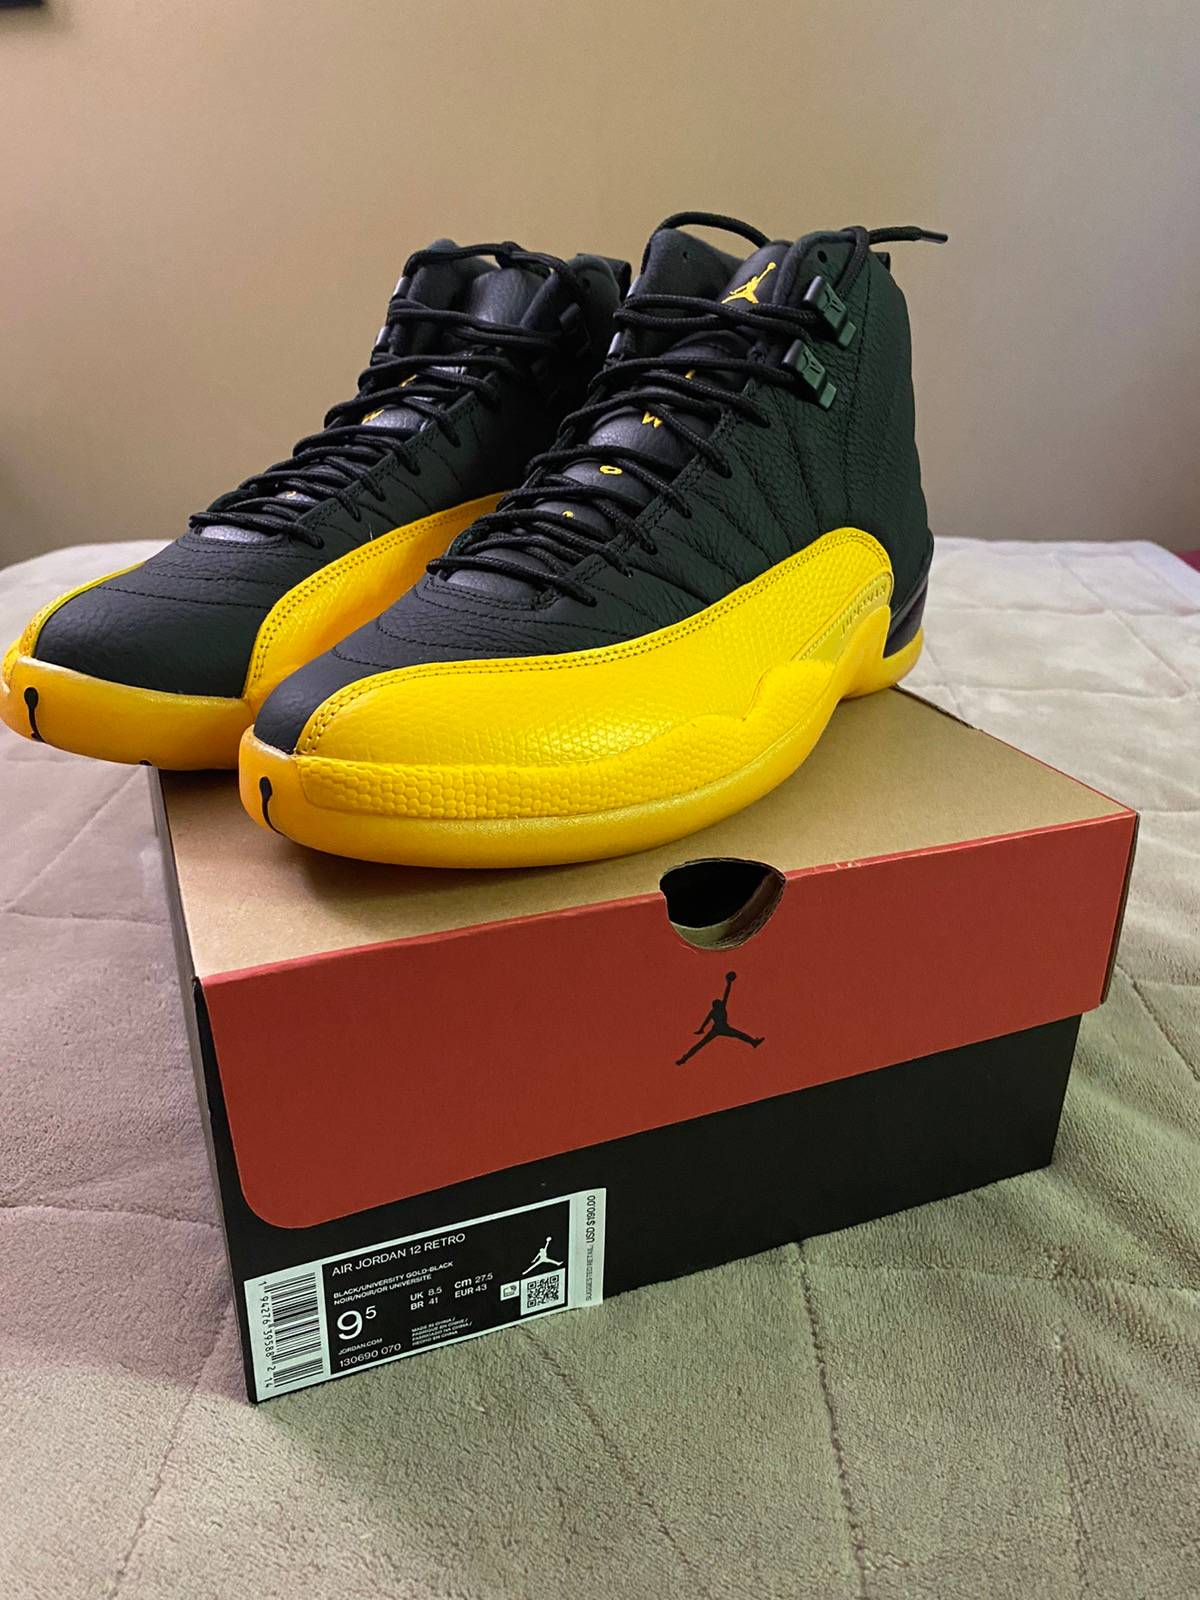 Nike Air Jordan 12 University Gold Grailed